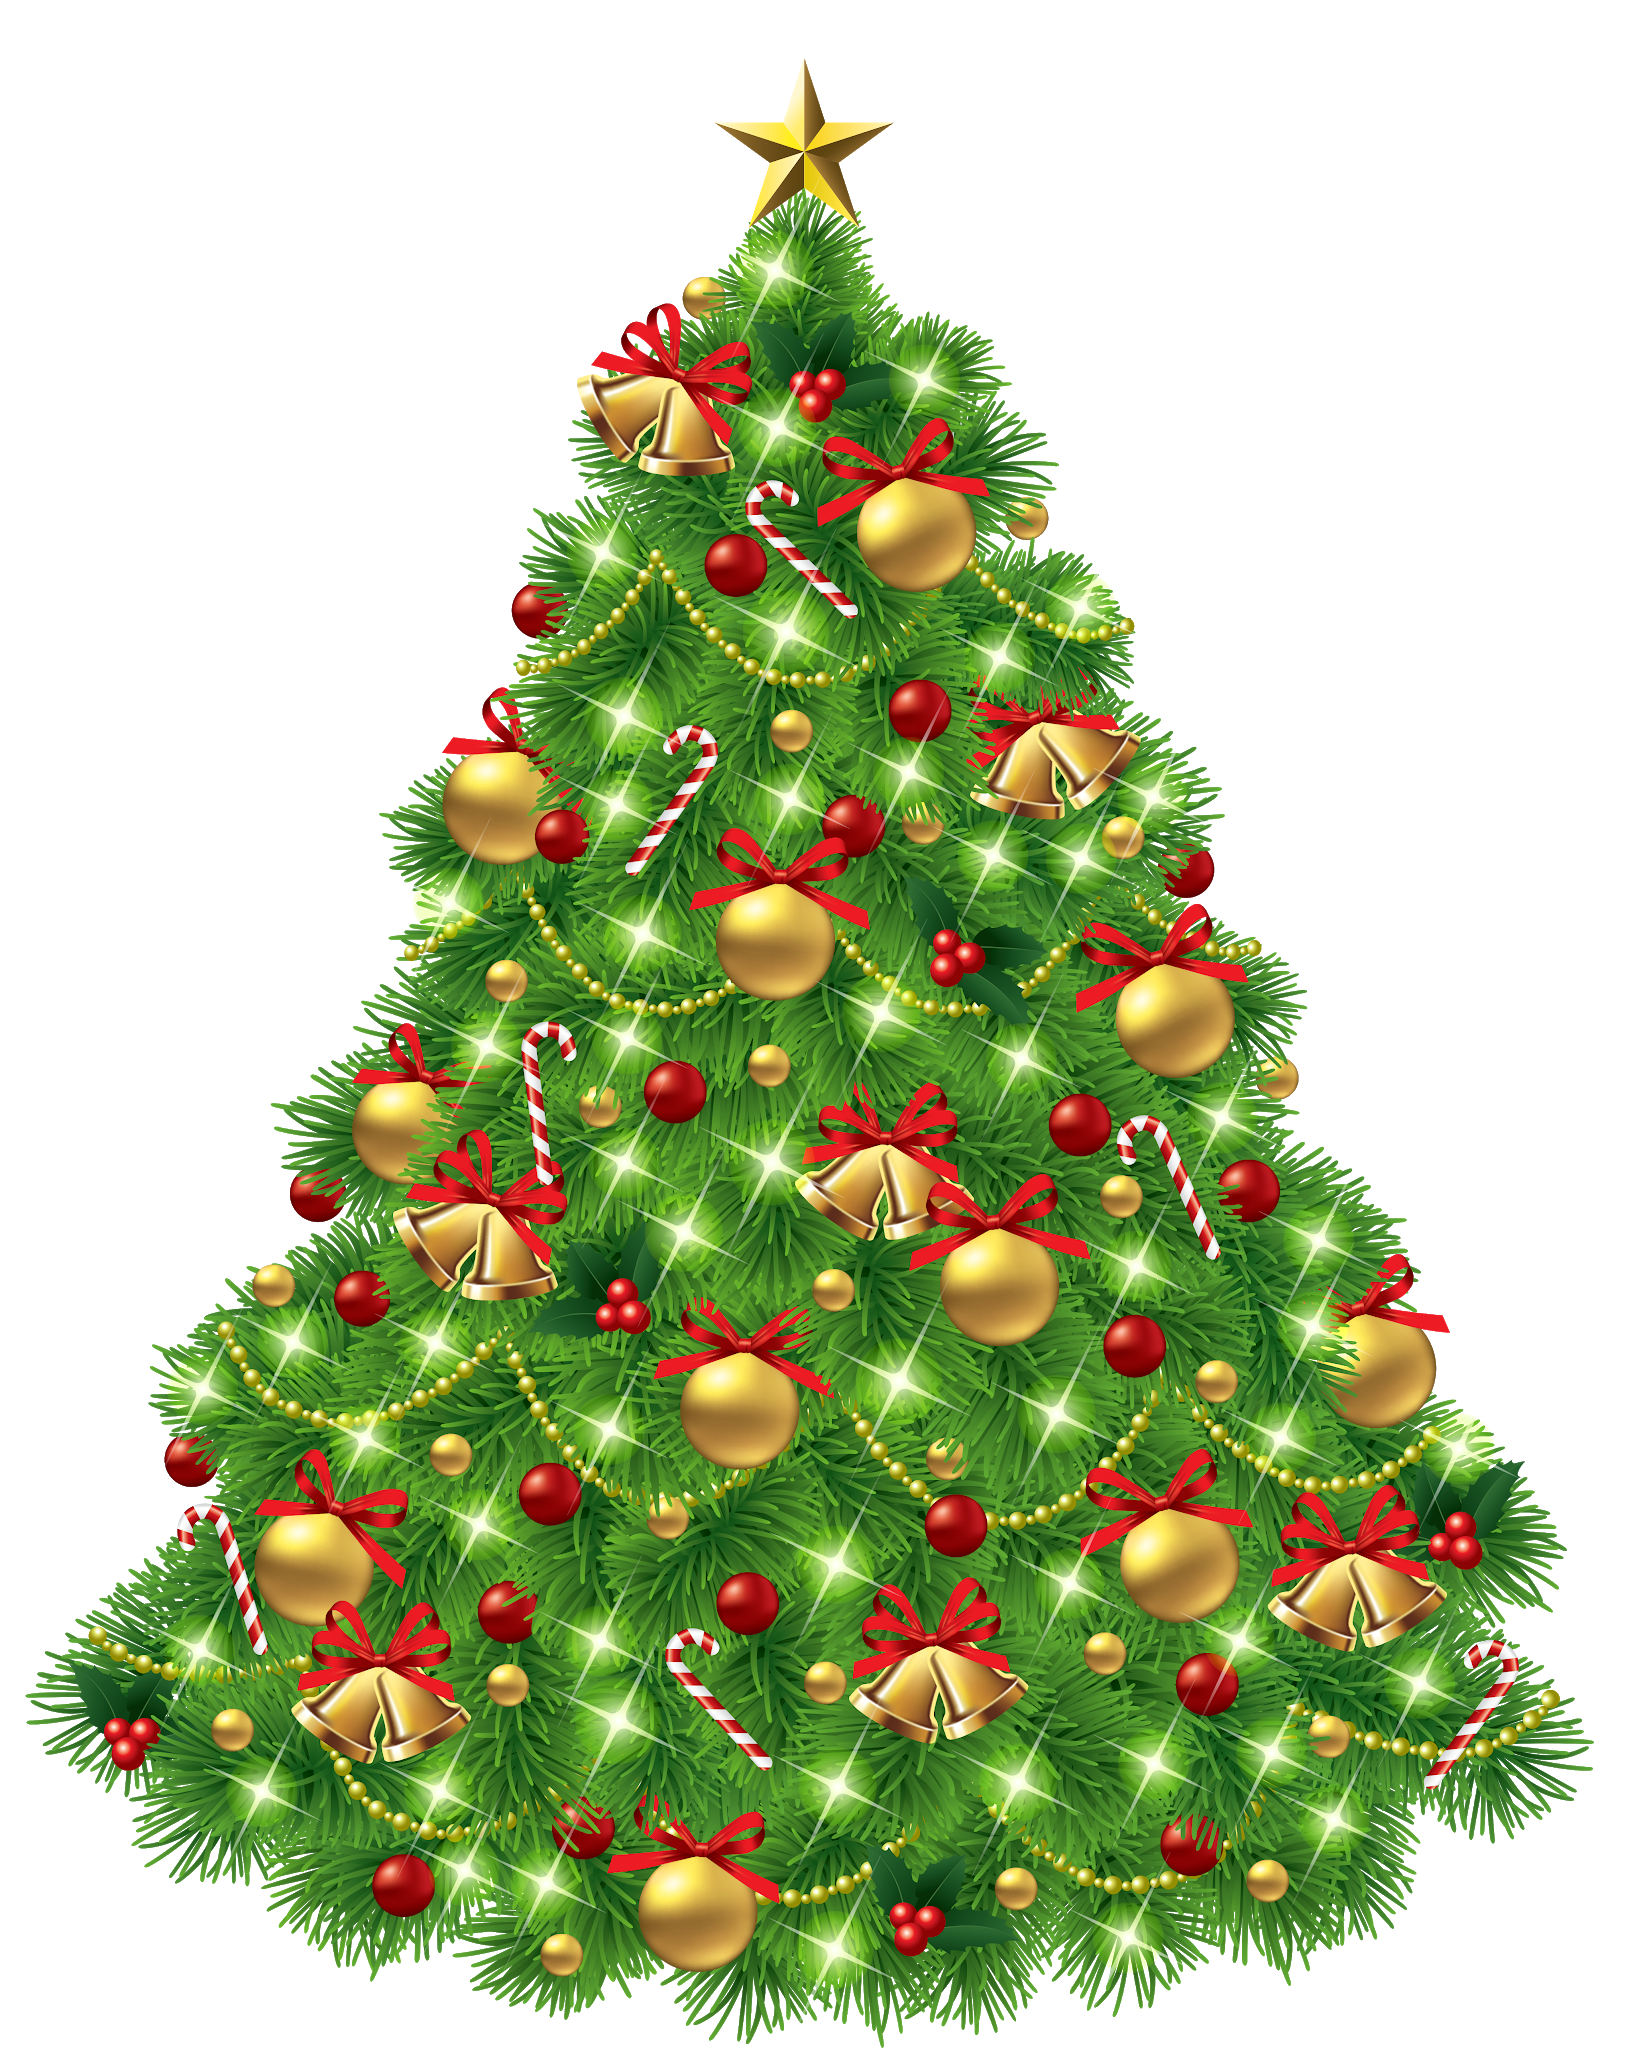 Pin by pngsector on Christmas PNG & Christmas Transparent